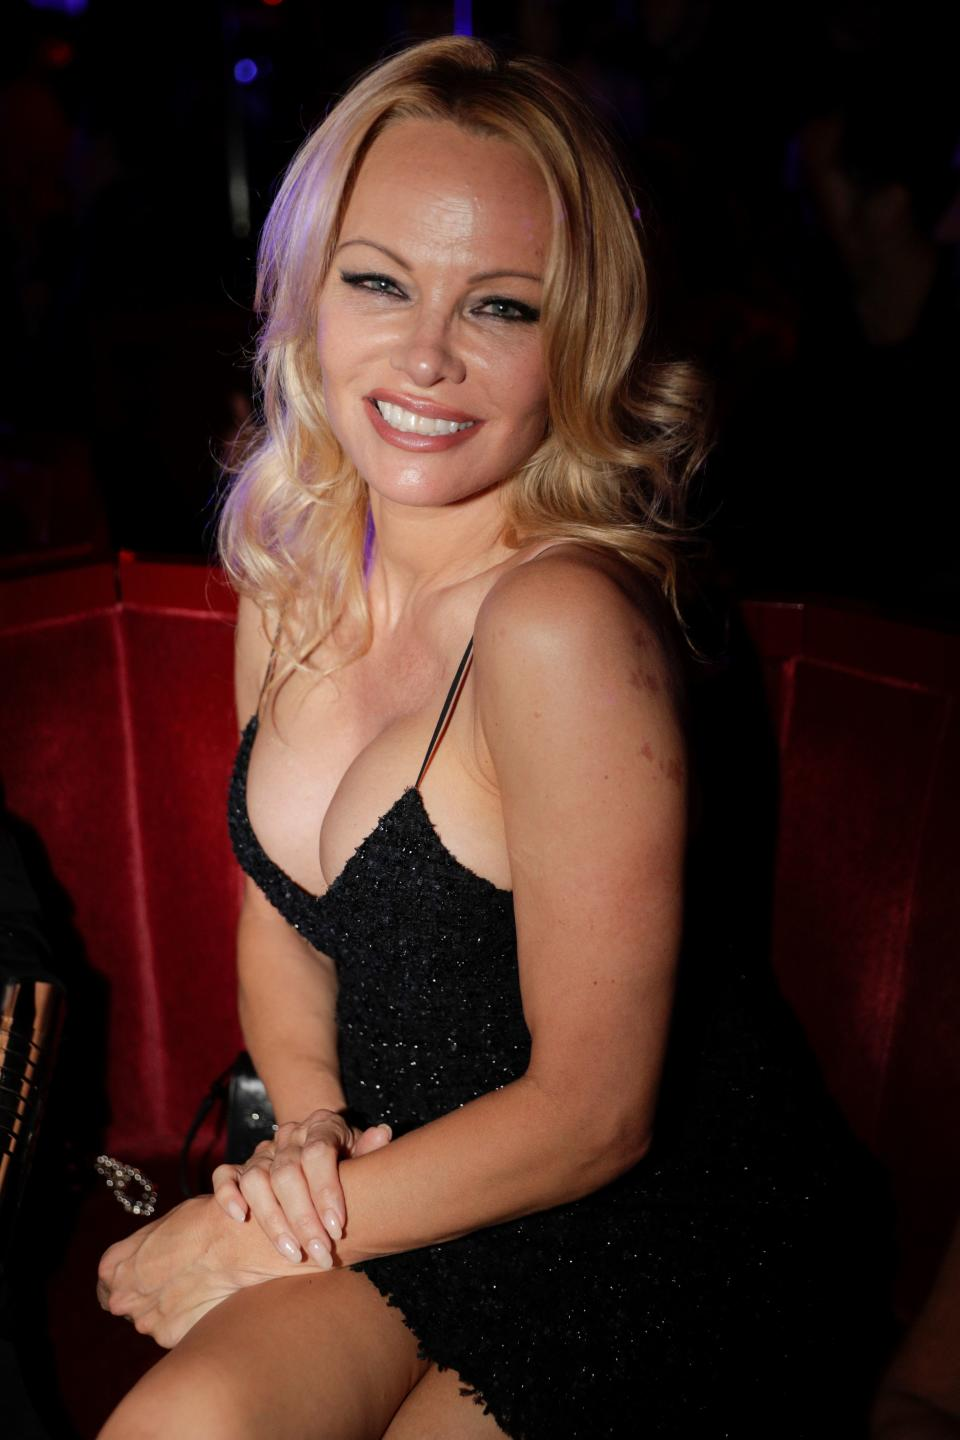 """US actress Pamela Anderson attends the Premiere of the new show """"Bionic ShowGirl"""" at the """"Crazy Horse"""" cabaret on June 3, 2019 in Paris. (Photo by Geoffroy VAN DER HASSELT / AFP)        (Photo credit should read GEOFFROY VAN DER HASSELT/AFP/Getty Images)"""